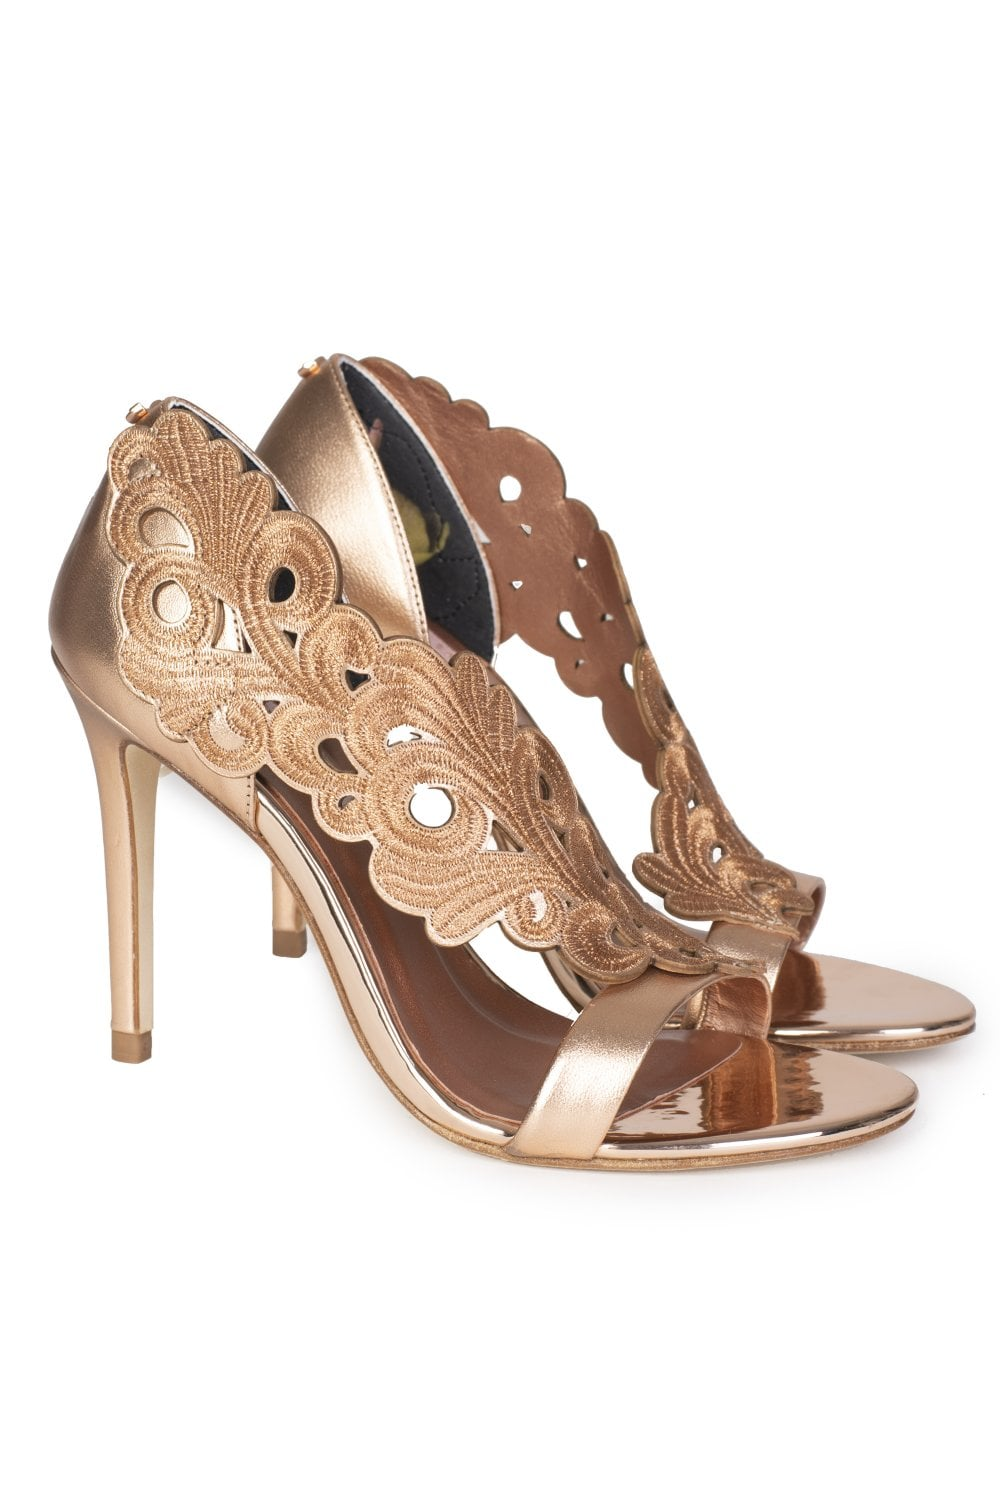 704de6600a7e TED BAKER Floral Cut Myrana Sandals Rose Gold - Clothing from Circle  Fashion UK